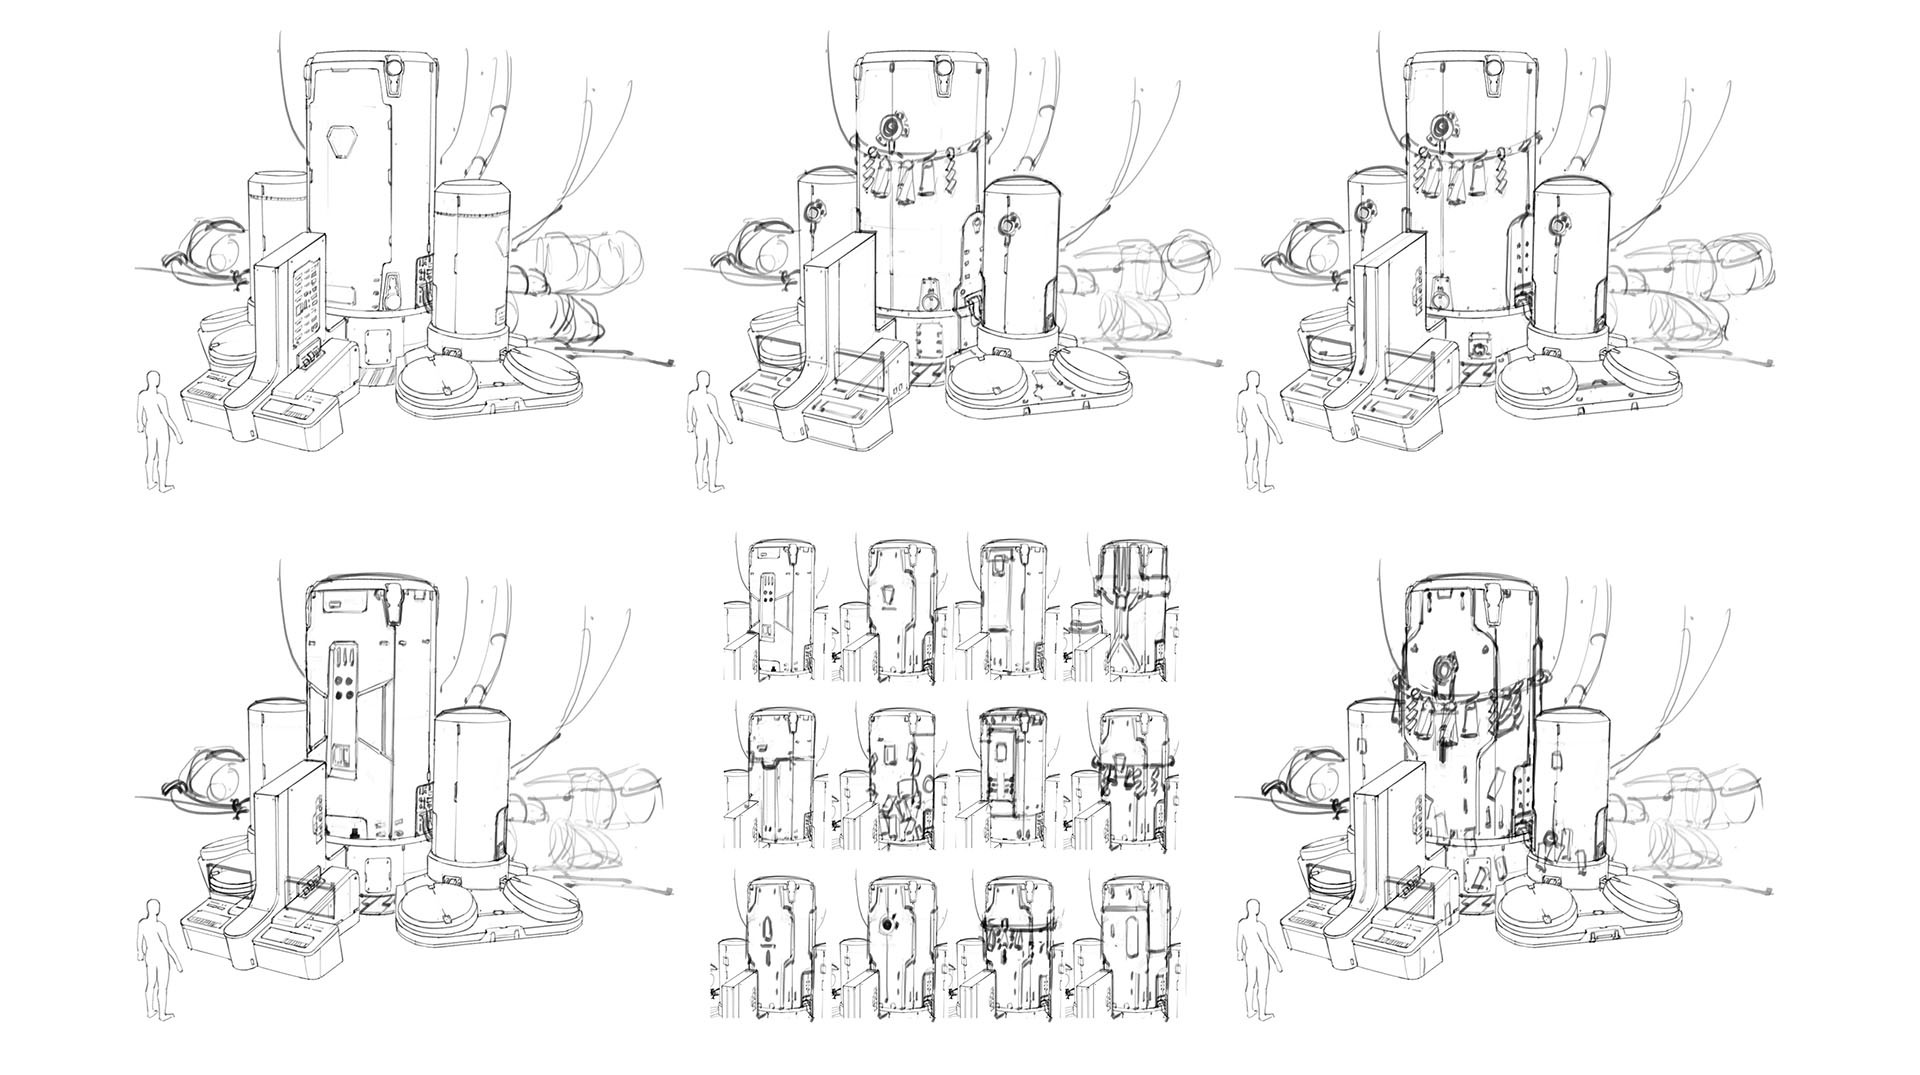 Dominic chan prop terminal sketches 20180415